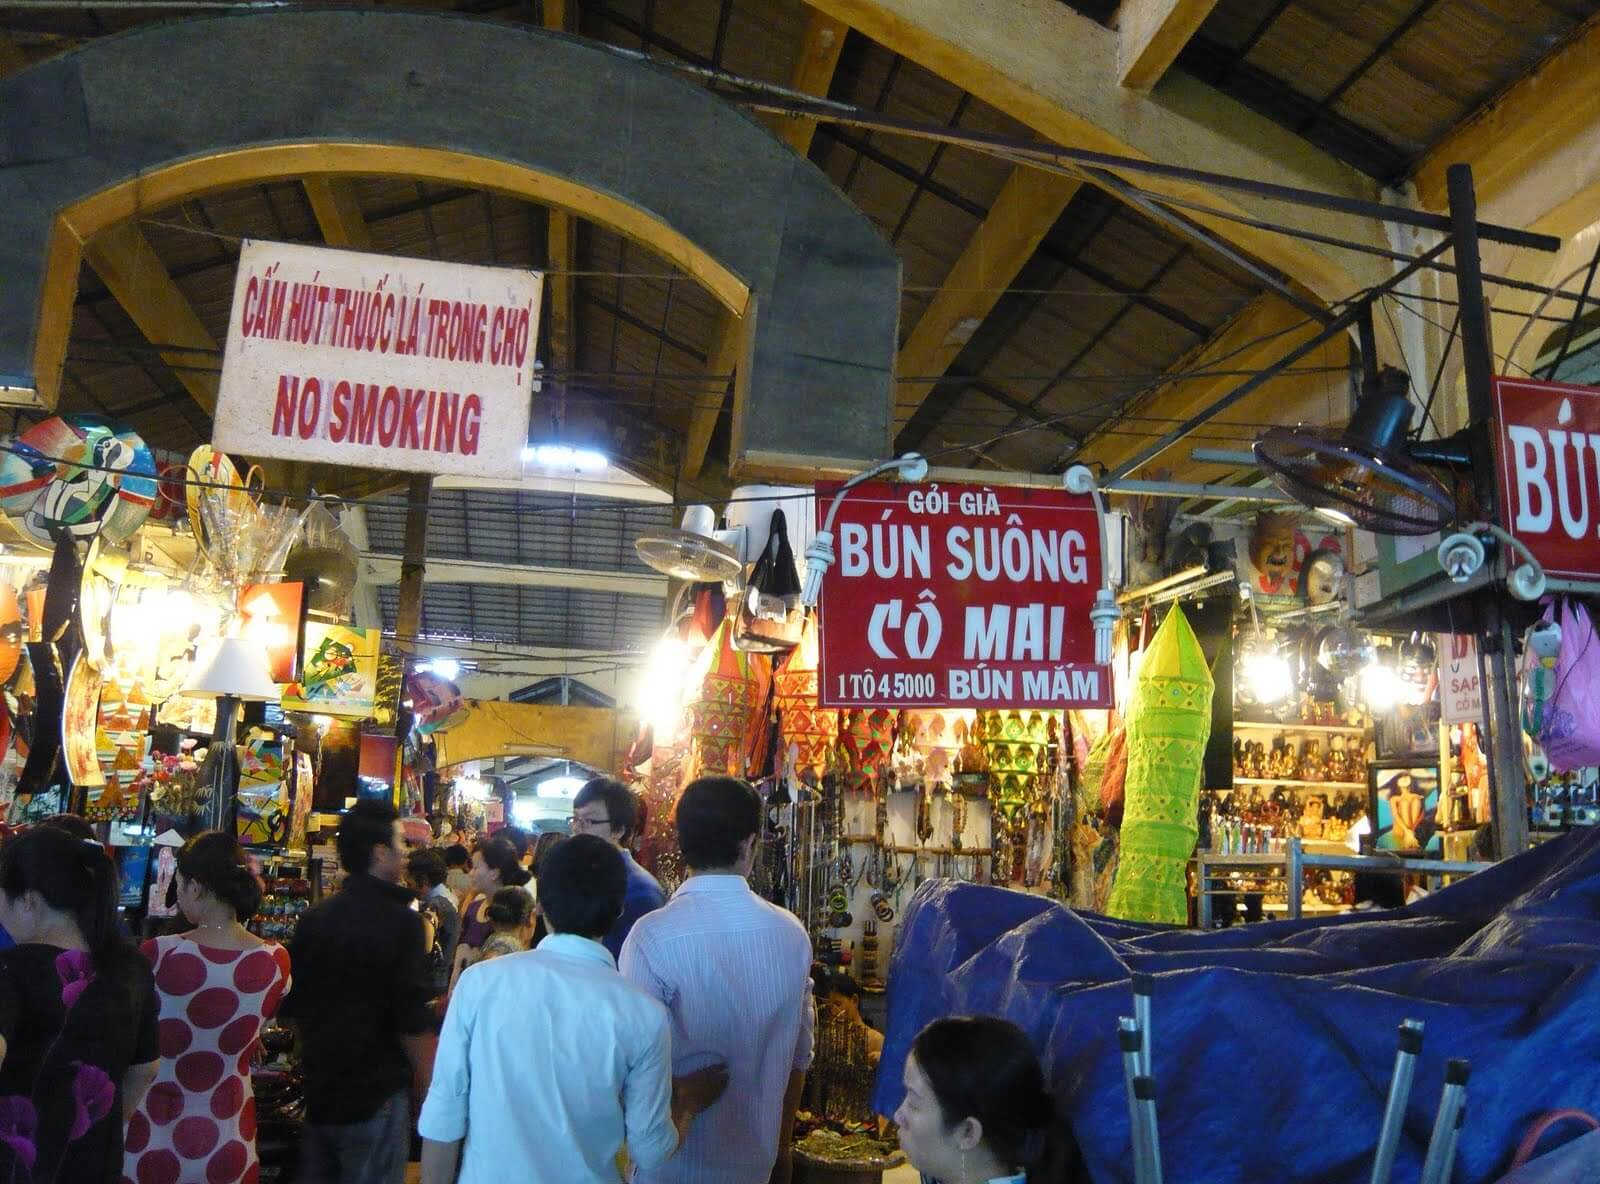 Exciting atmosphere inside Tay Do Market